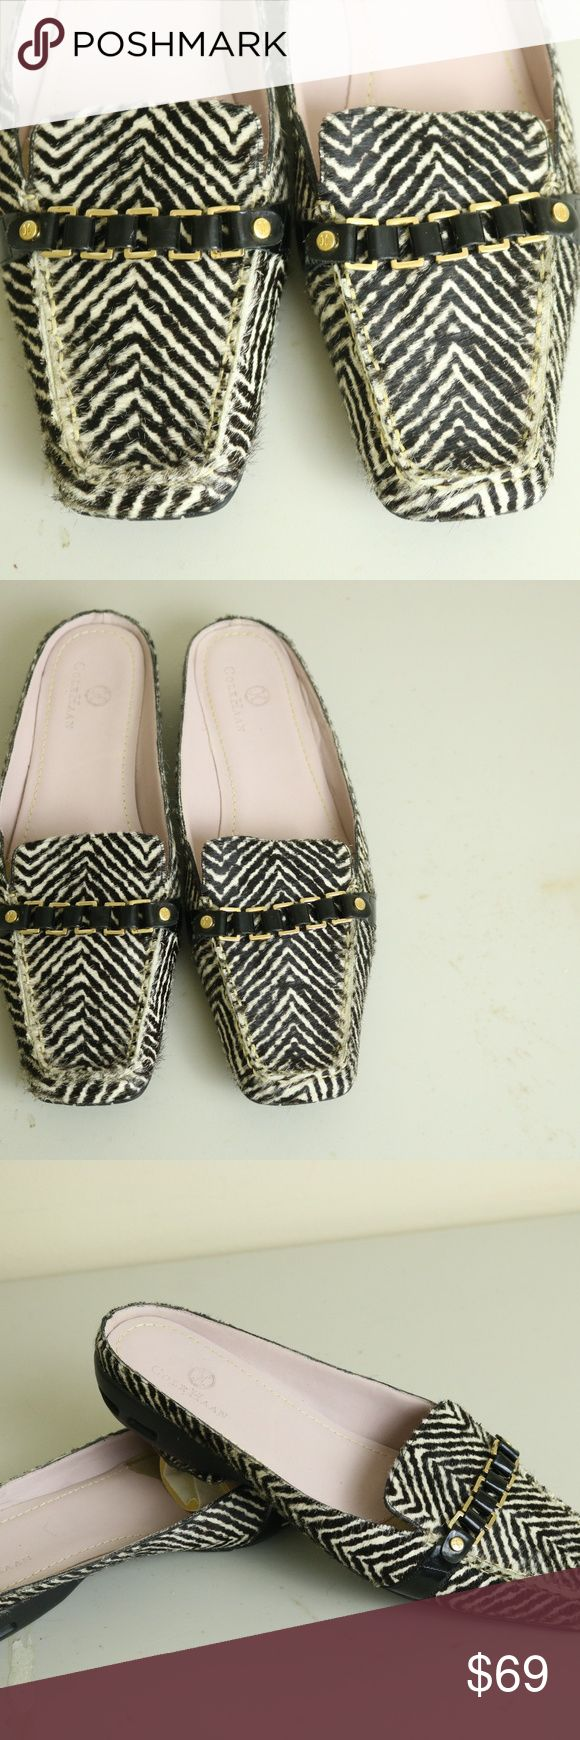 COLE HAAN CALF HAIR ZEBRA SOMEN'S SIZE 8.5 ITEM IS A PAIR OF PRE OWNED COLE HAAN NIKE AIR WOMES CASUAL CALF HAIR ZEBRA PRINT SLIPPERS IN A SIZE 8.5  ITEM IS IN GOOD USED CONDITION Cole Haan Shoes Slippers